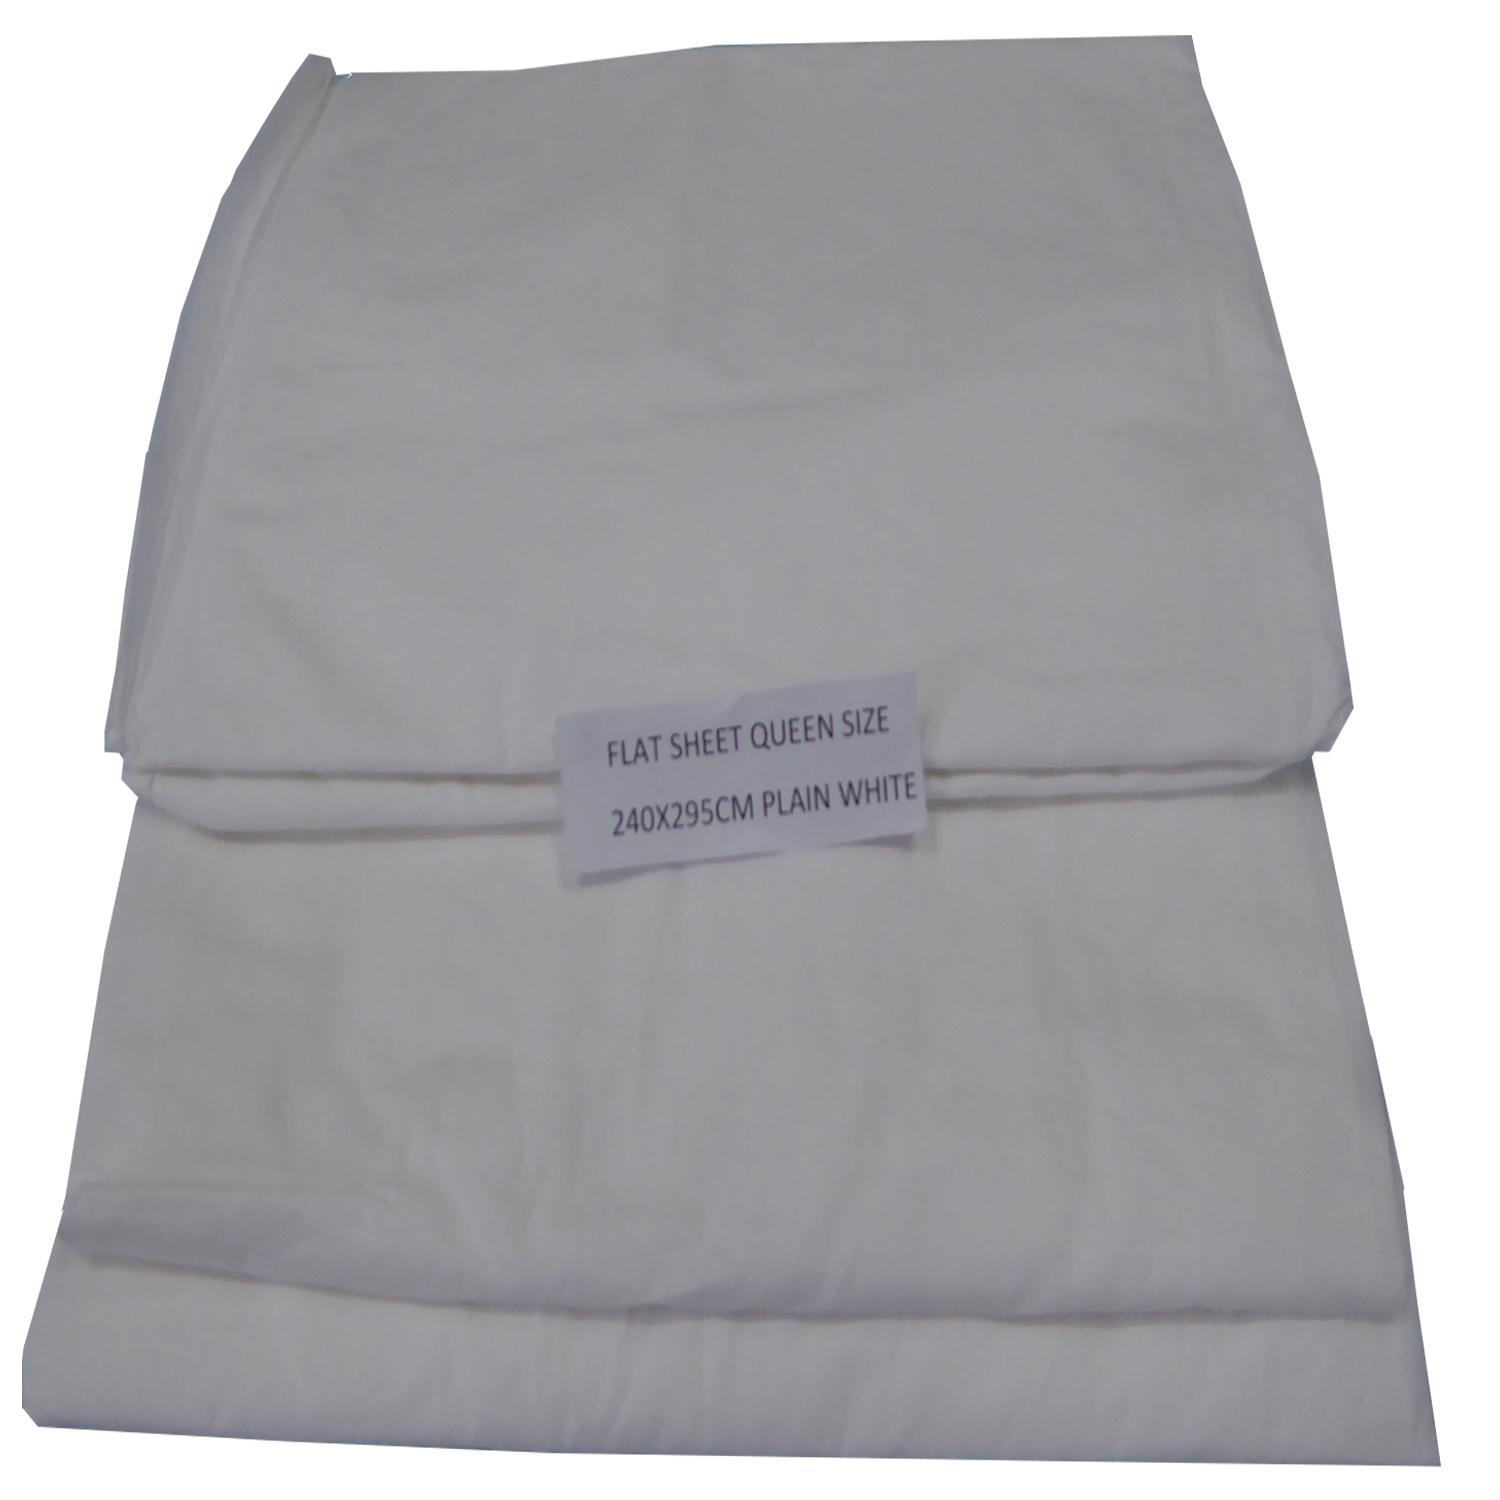 White Flat Sheet Queensbed 240x295cm #41808033011